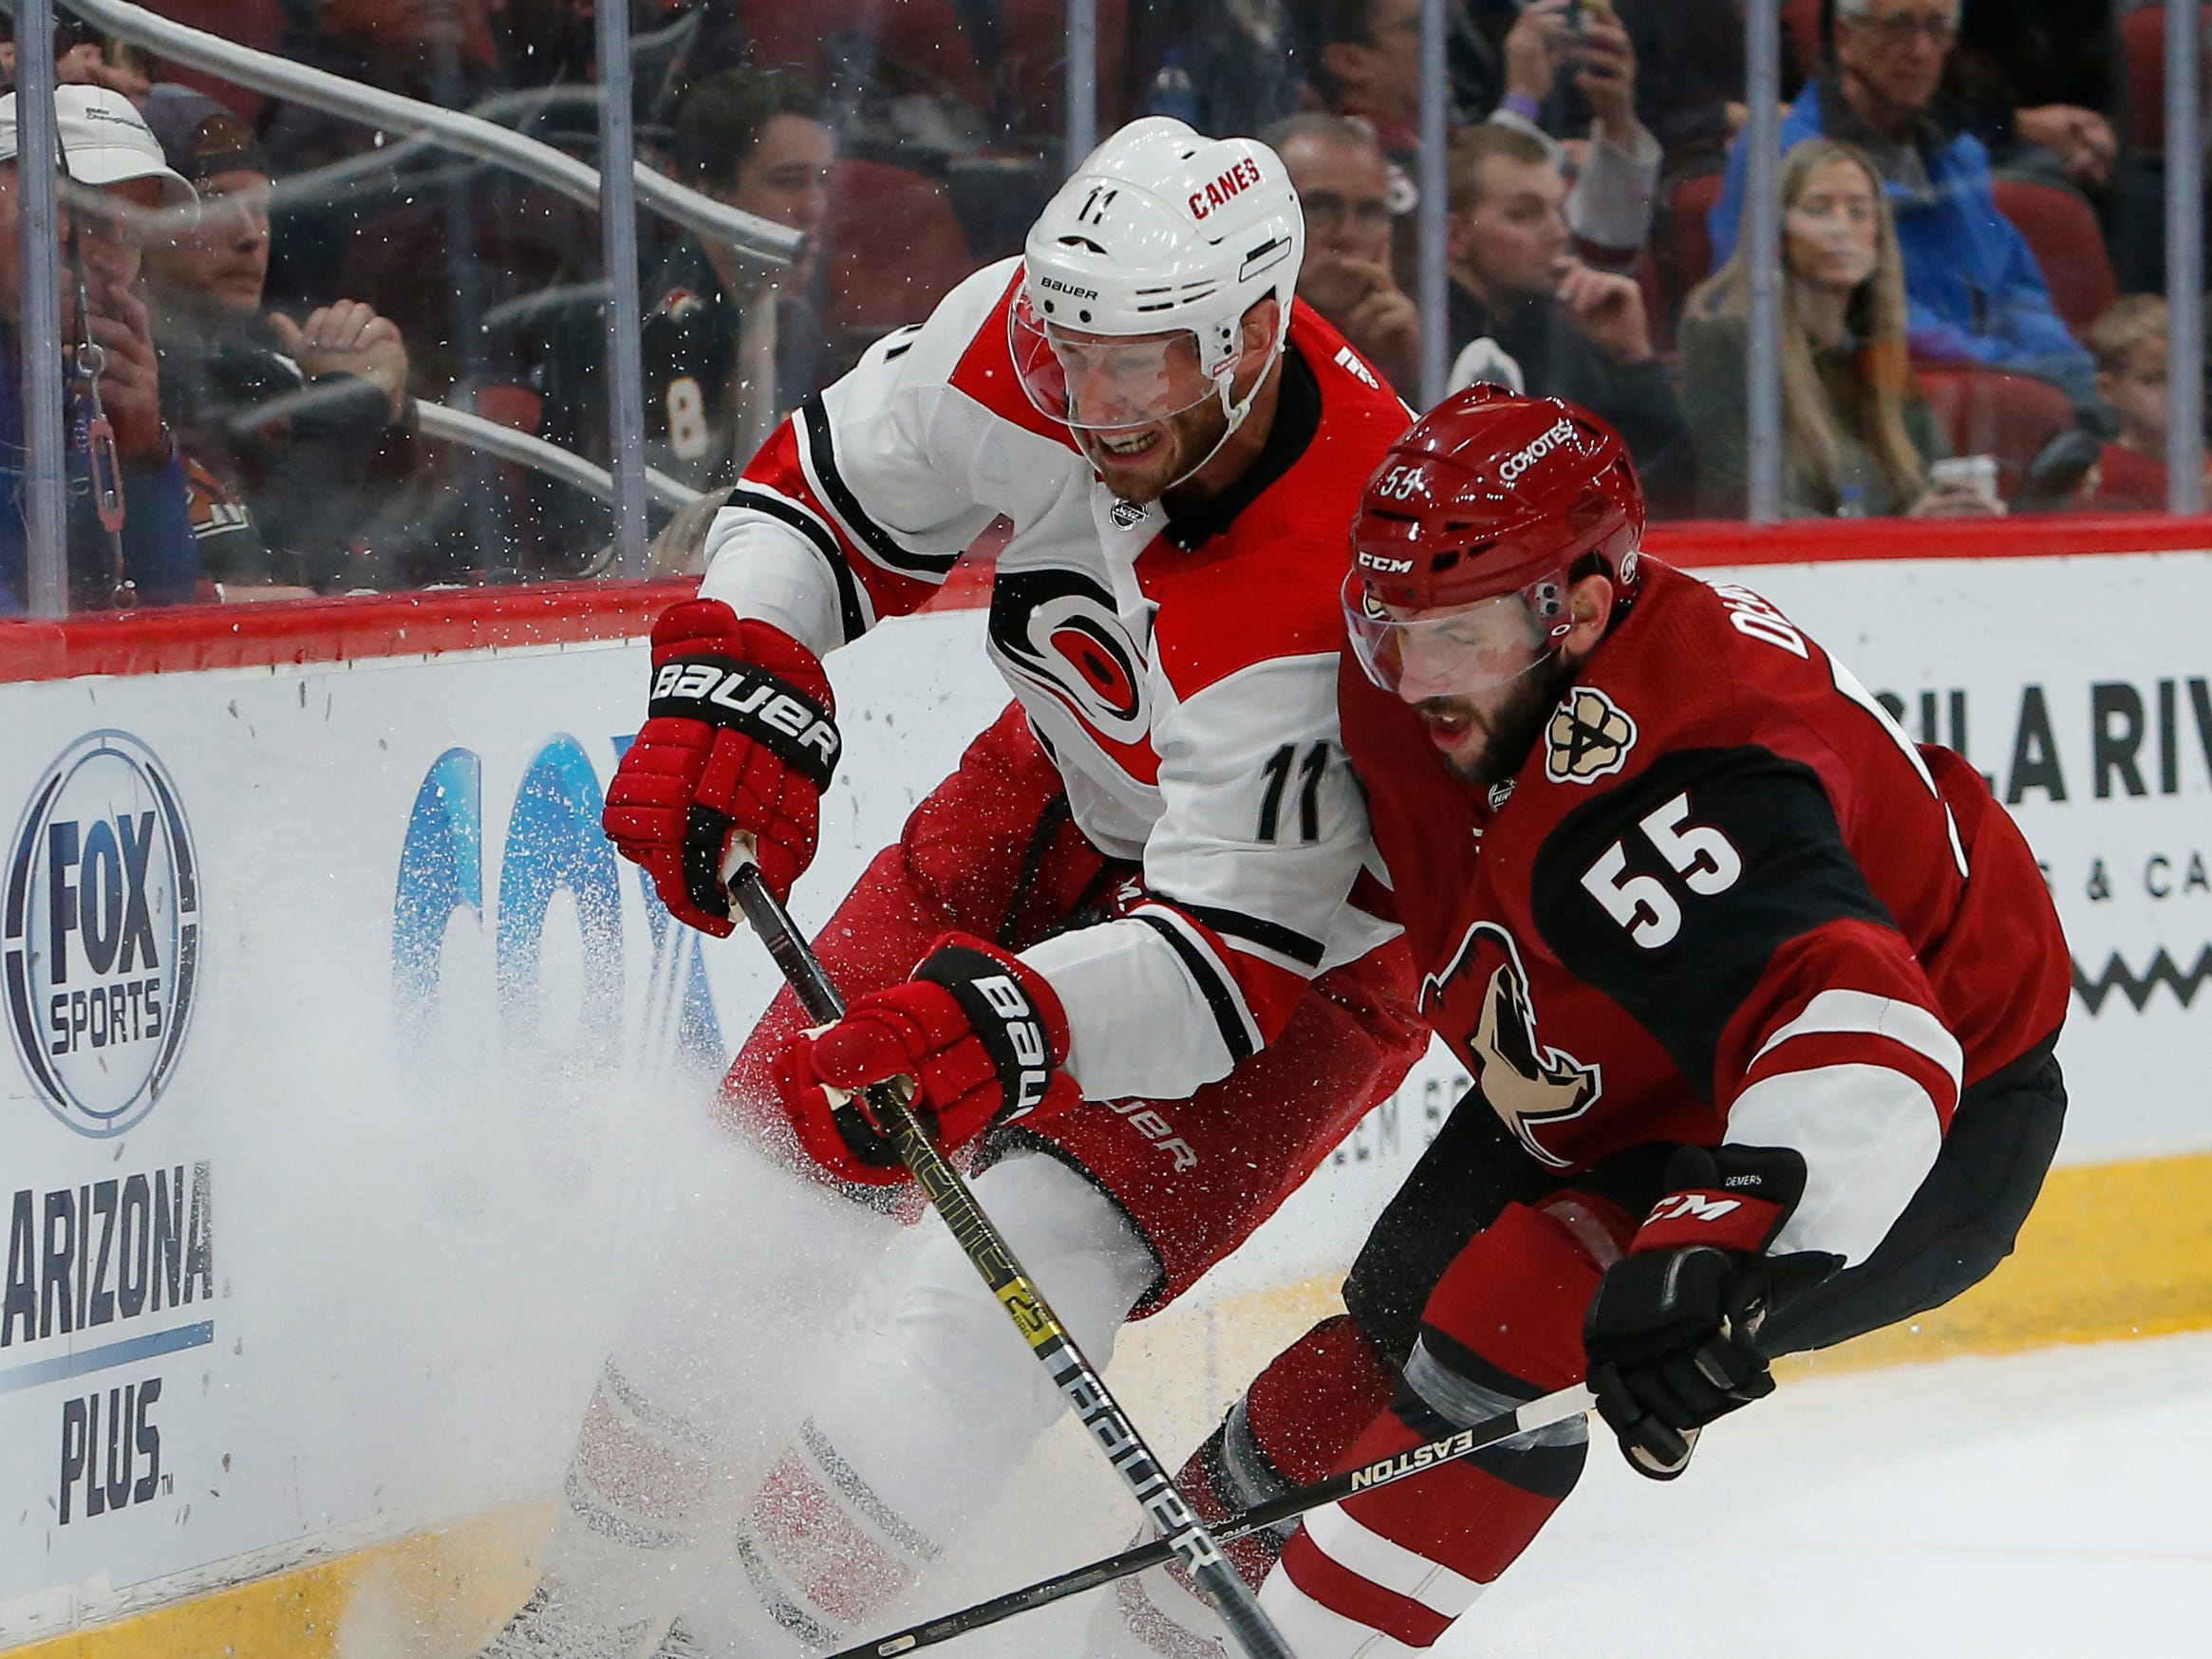 Carolina Hurricanes center Jordan Staal (11) and Arizona Coyotes defenseman Jason Demers vie for the puck during the first period of an NHL hockey game Friday, Nov. 2, 2018, in Glendale, Ariz. (AP Photo/Rick Scuteri)